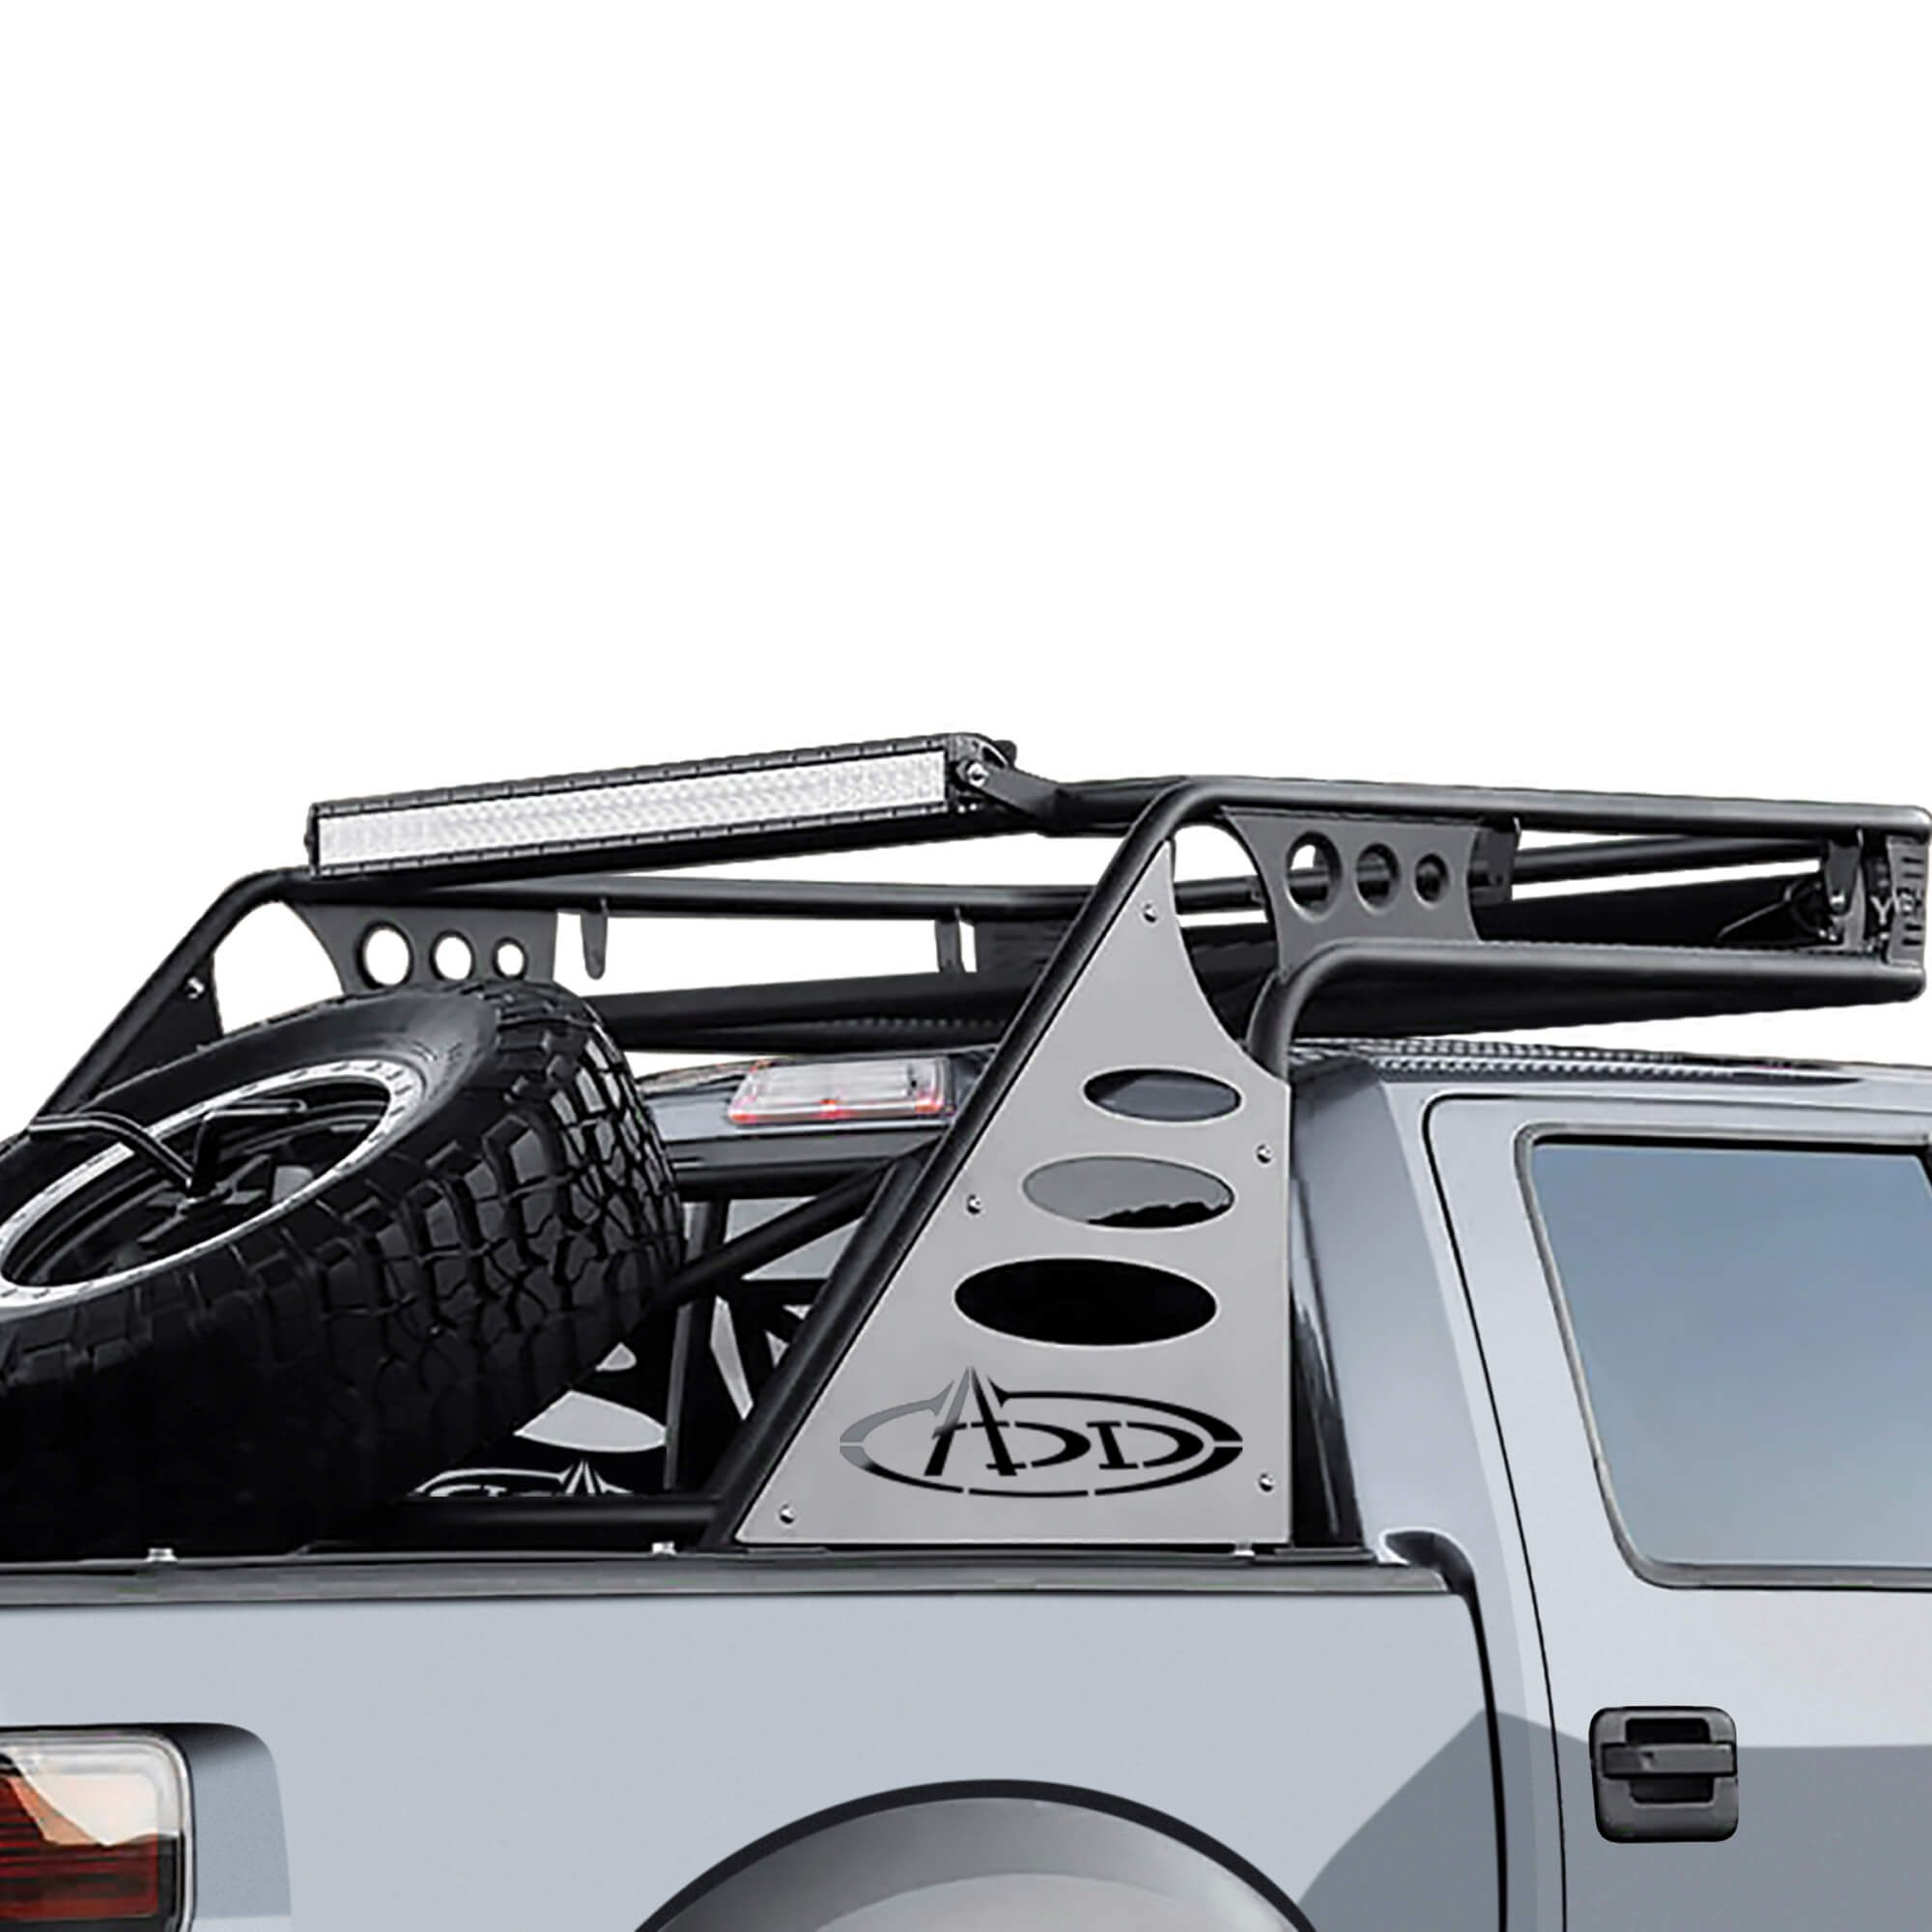 ADD Half Over Cab Chase Rack Truck accessories, Diesel